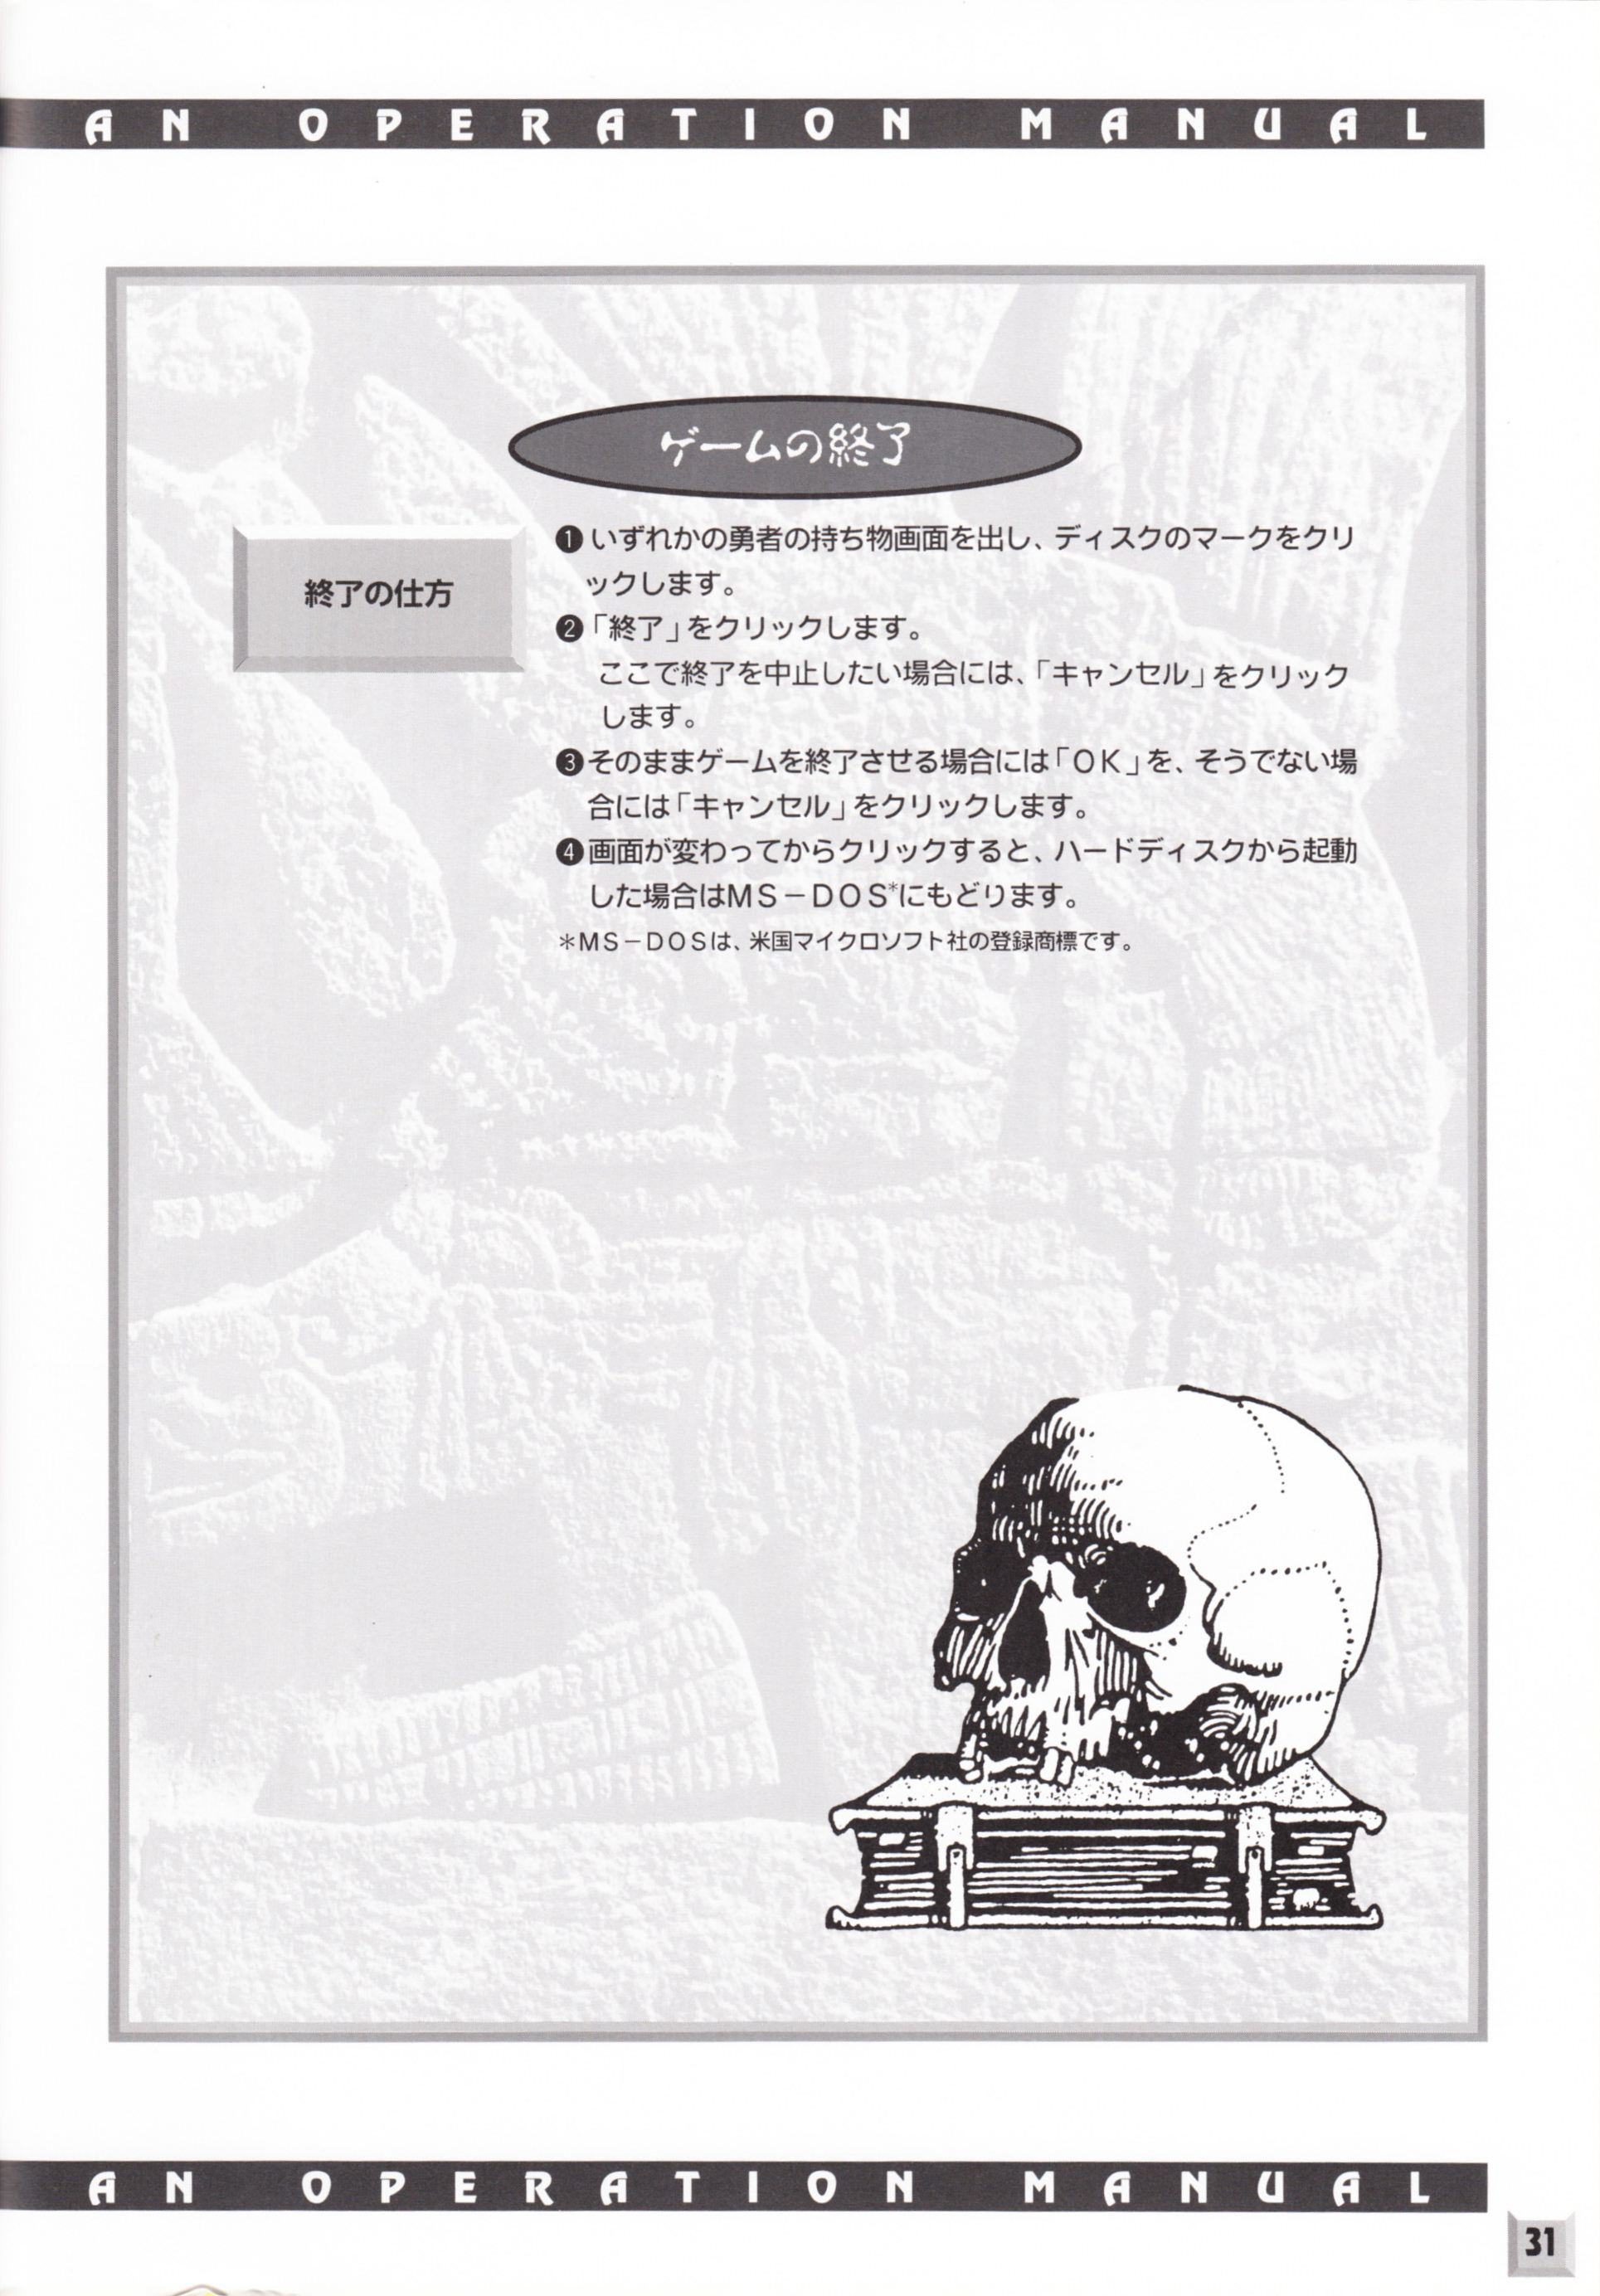 Game - Dungeon Master II - JP - PC-9801 - 3.5-inch - An Operation Manual - Page 033 - Scan